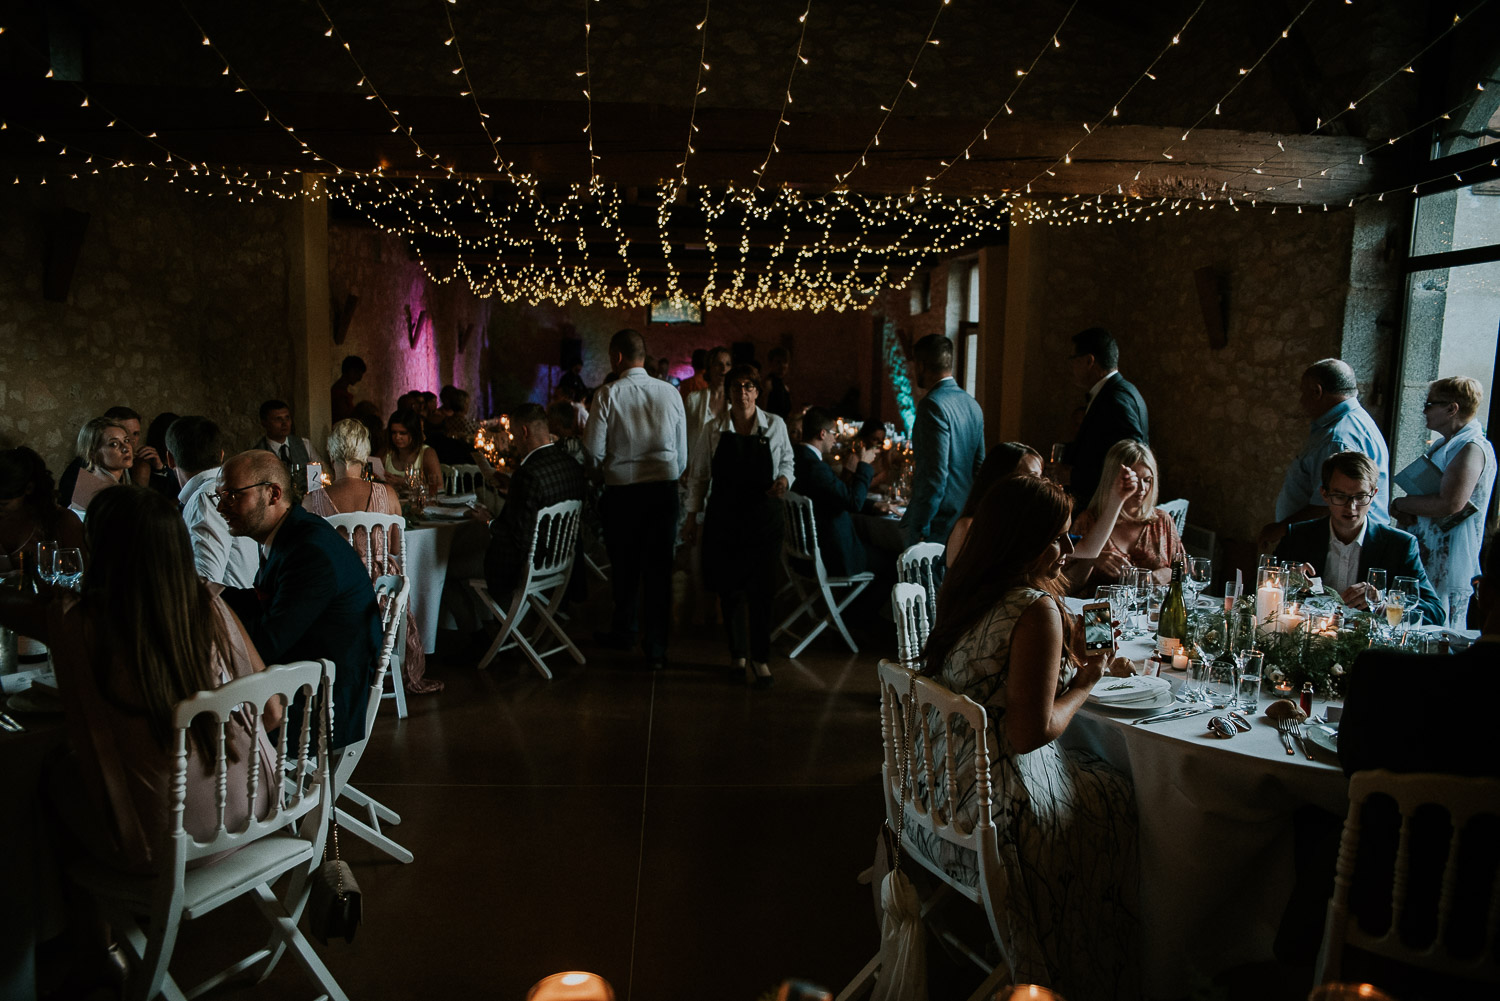 le_castelet_castres_tarn_gascony_south_west_france_family_wedding_katy_webb_photography_UK109